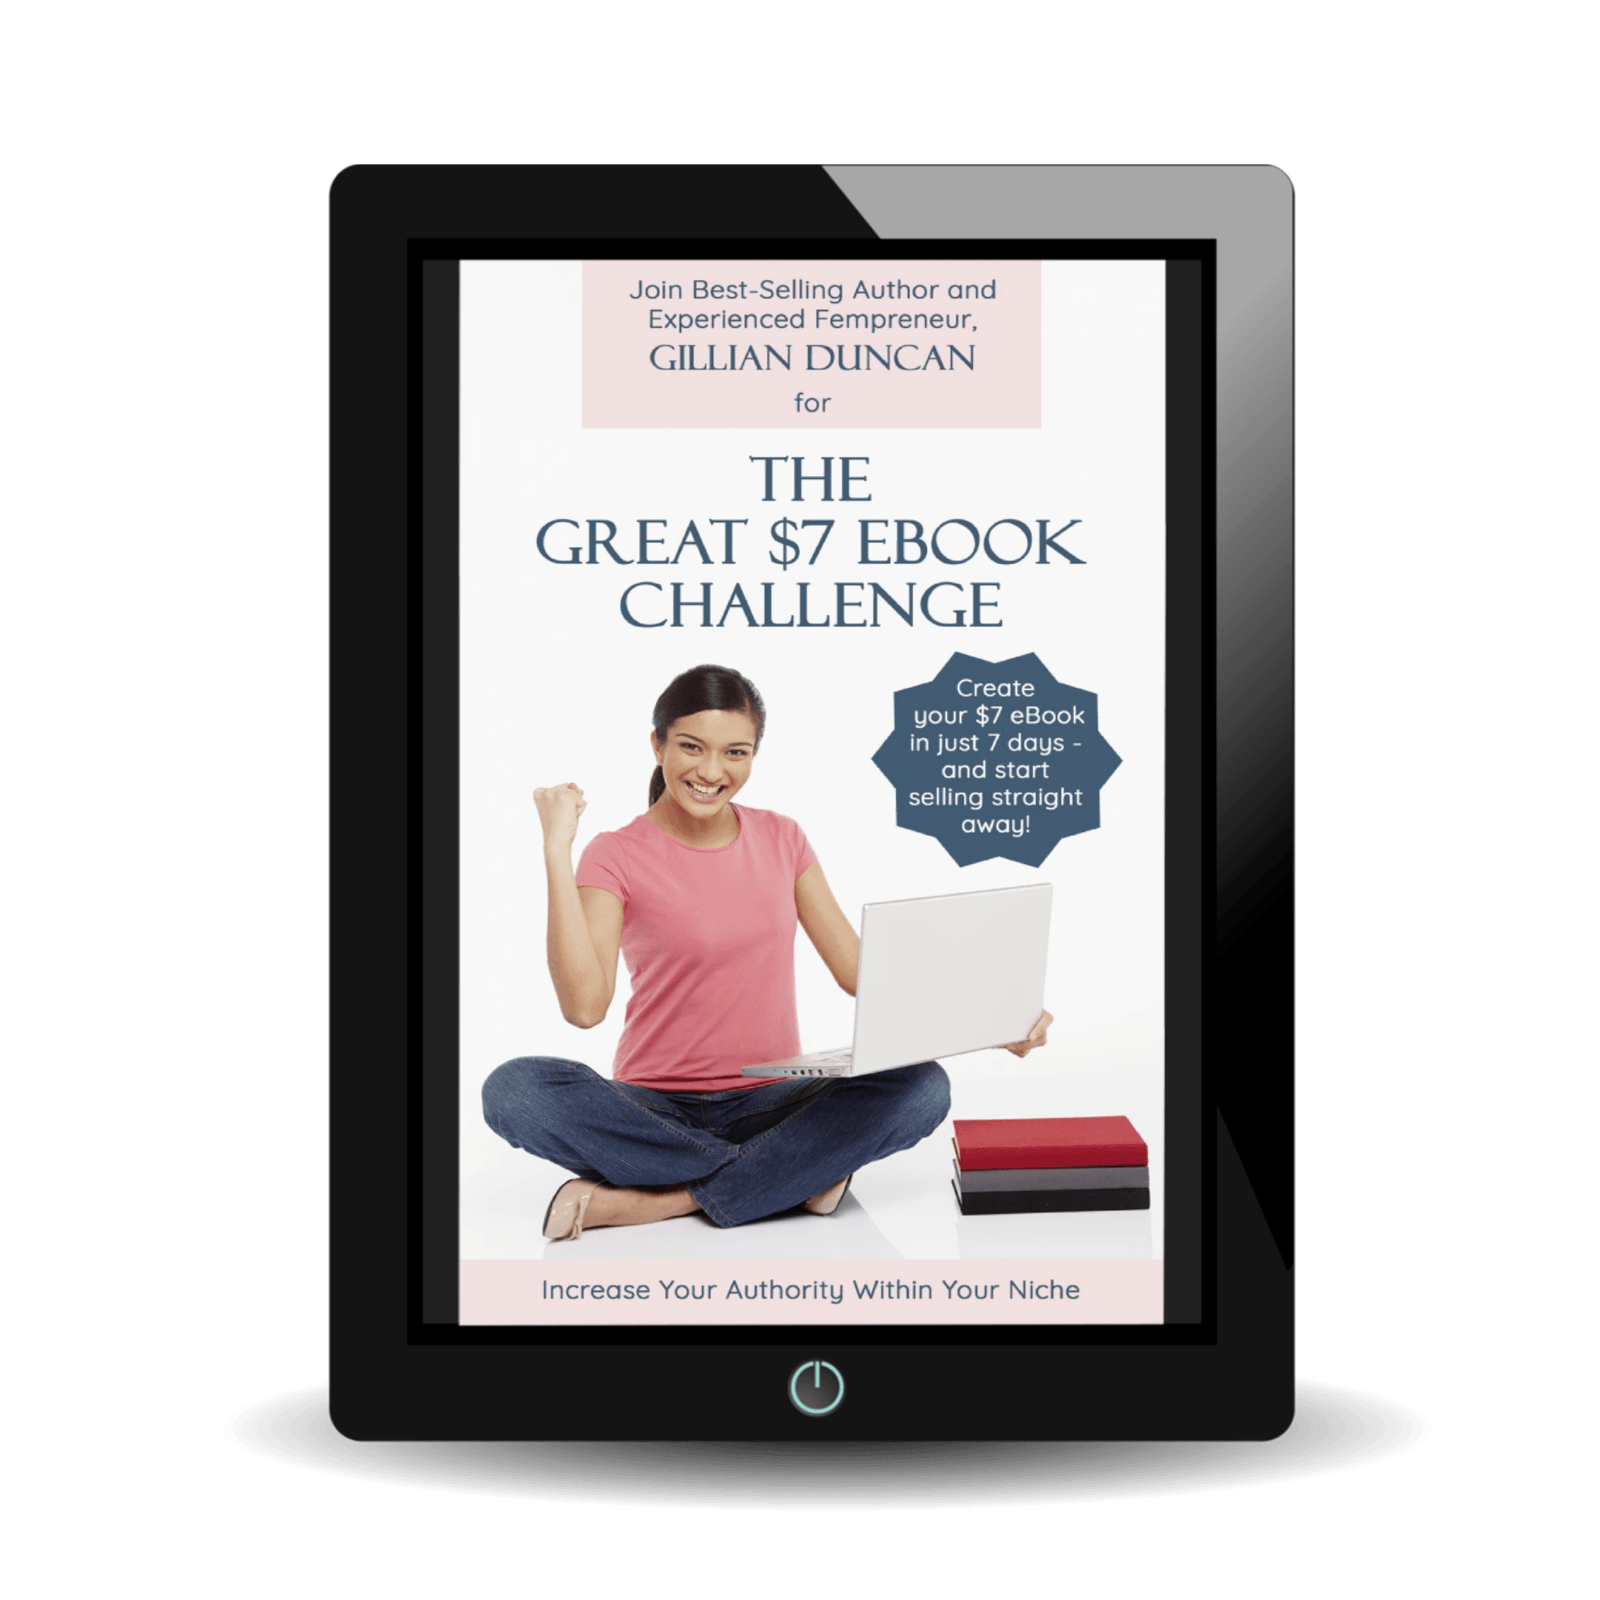 The Great $7 eBook Challenge Tablet